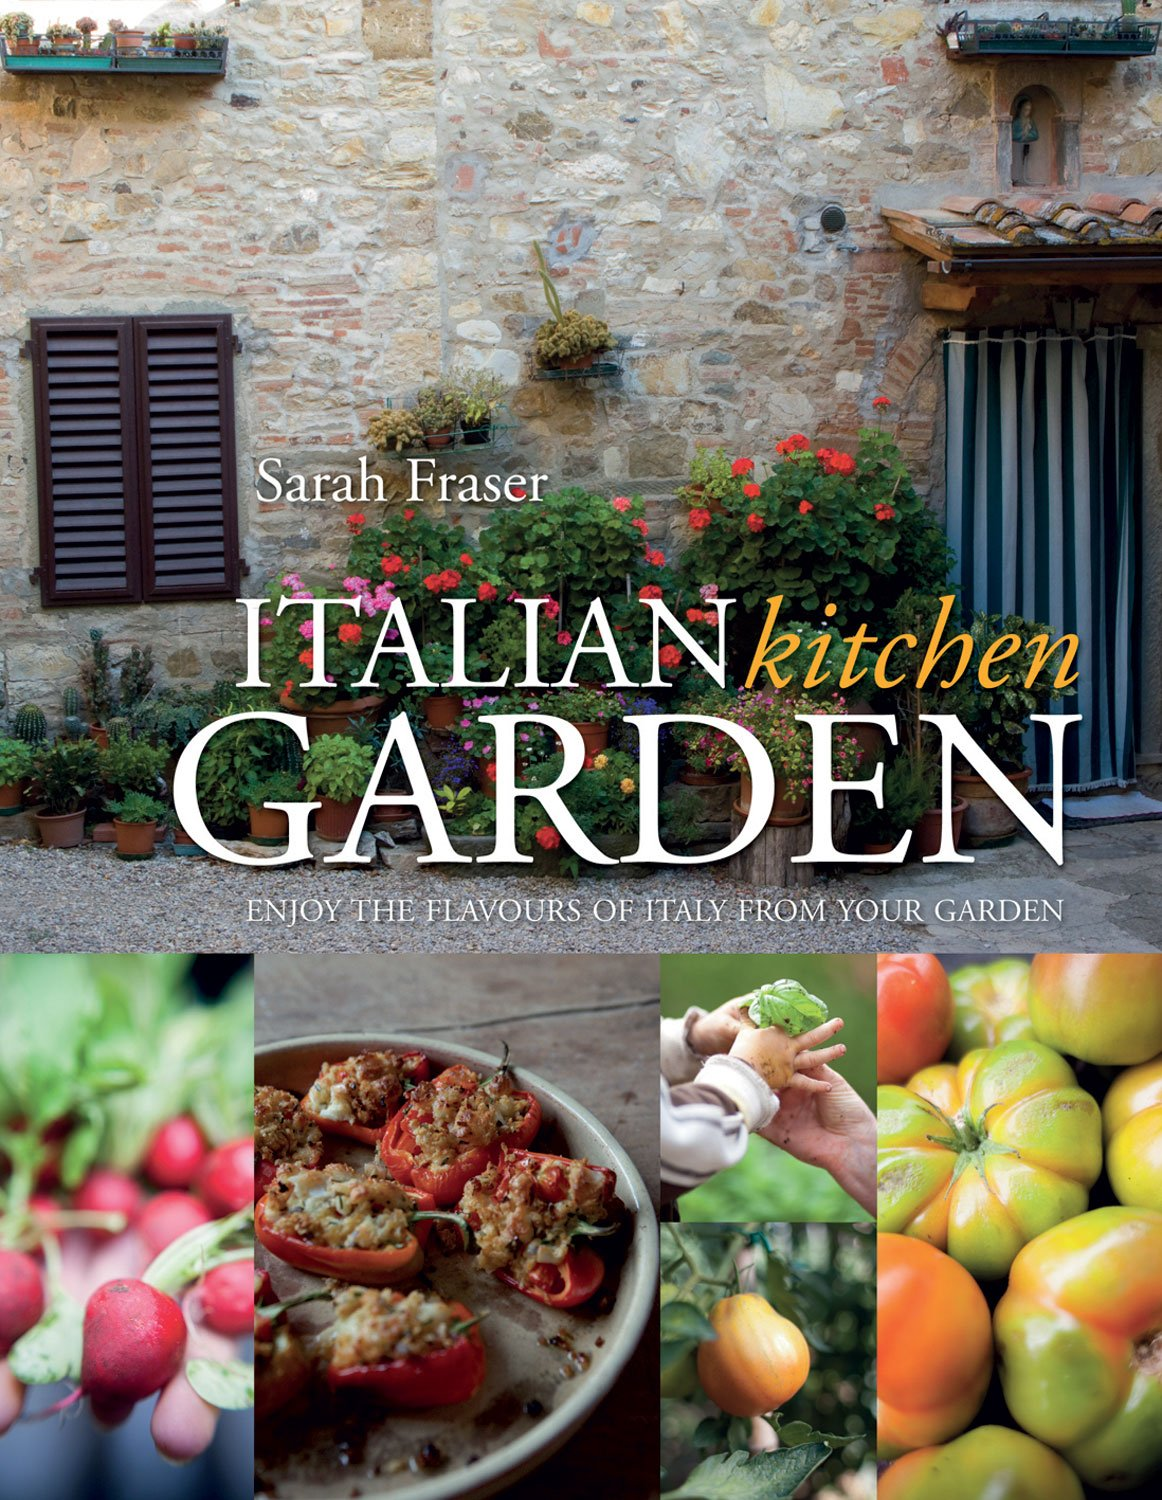 Kitchen Garden Foods Italian Kitchen Garden Enjoy The Flavours Of Italy From Your